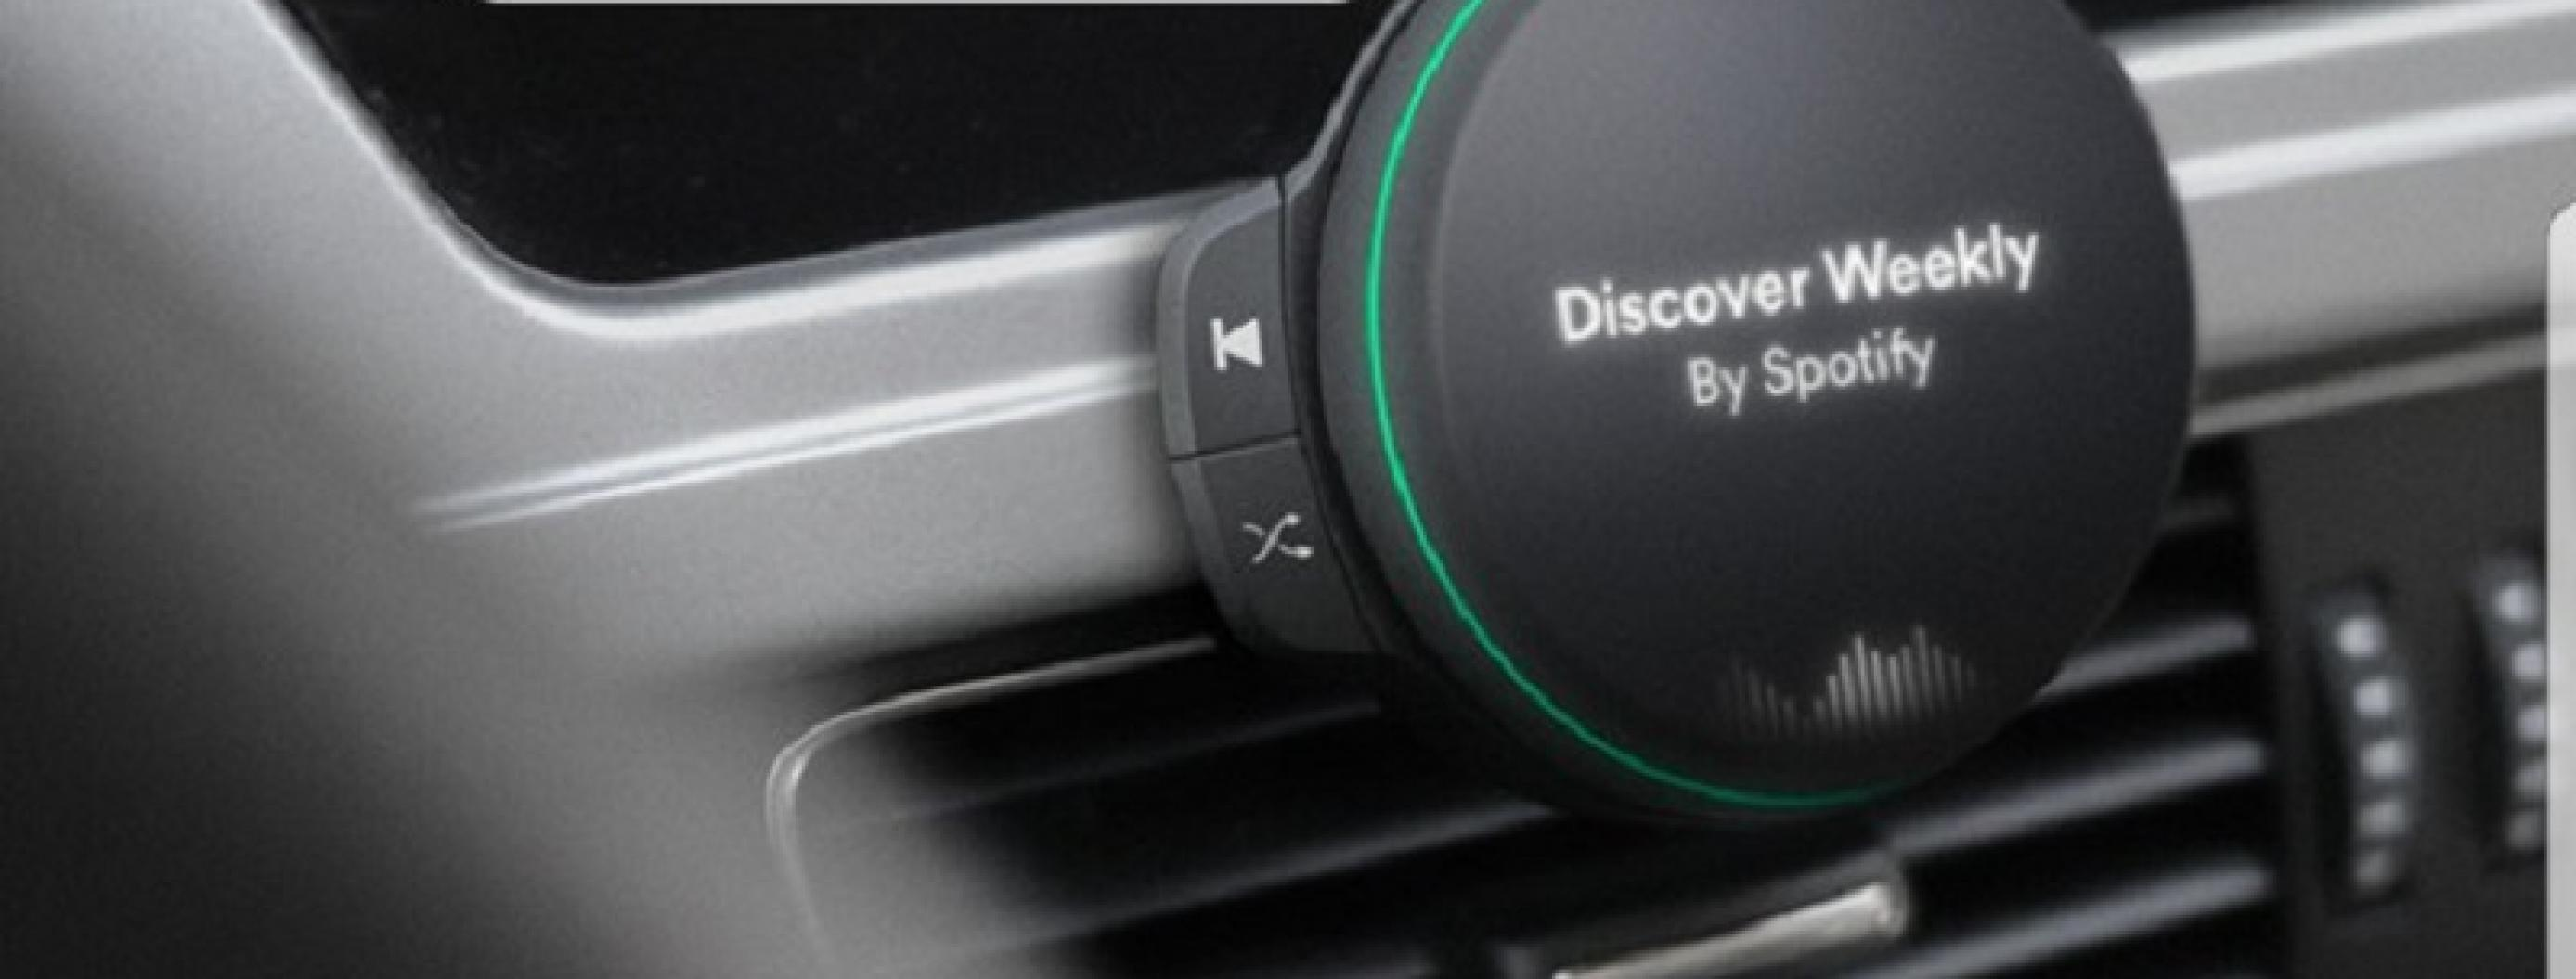 Spotify Could Release a Music Player for Your Car - Technology